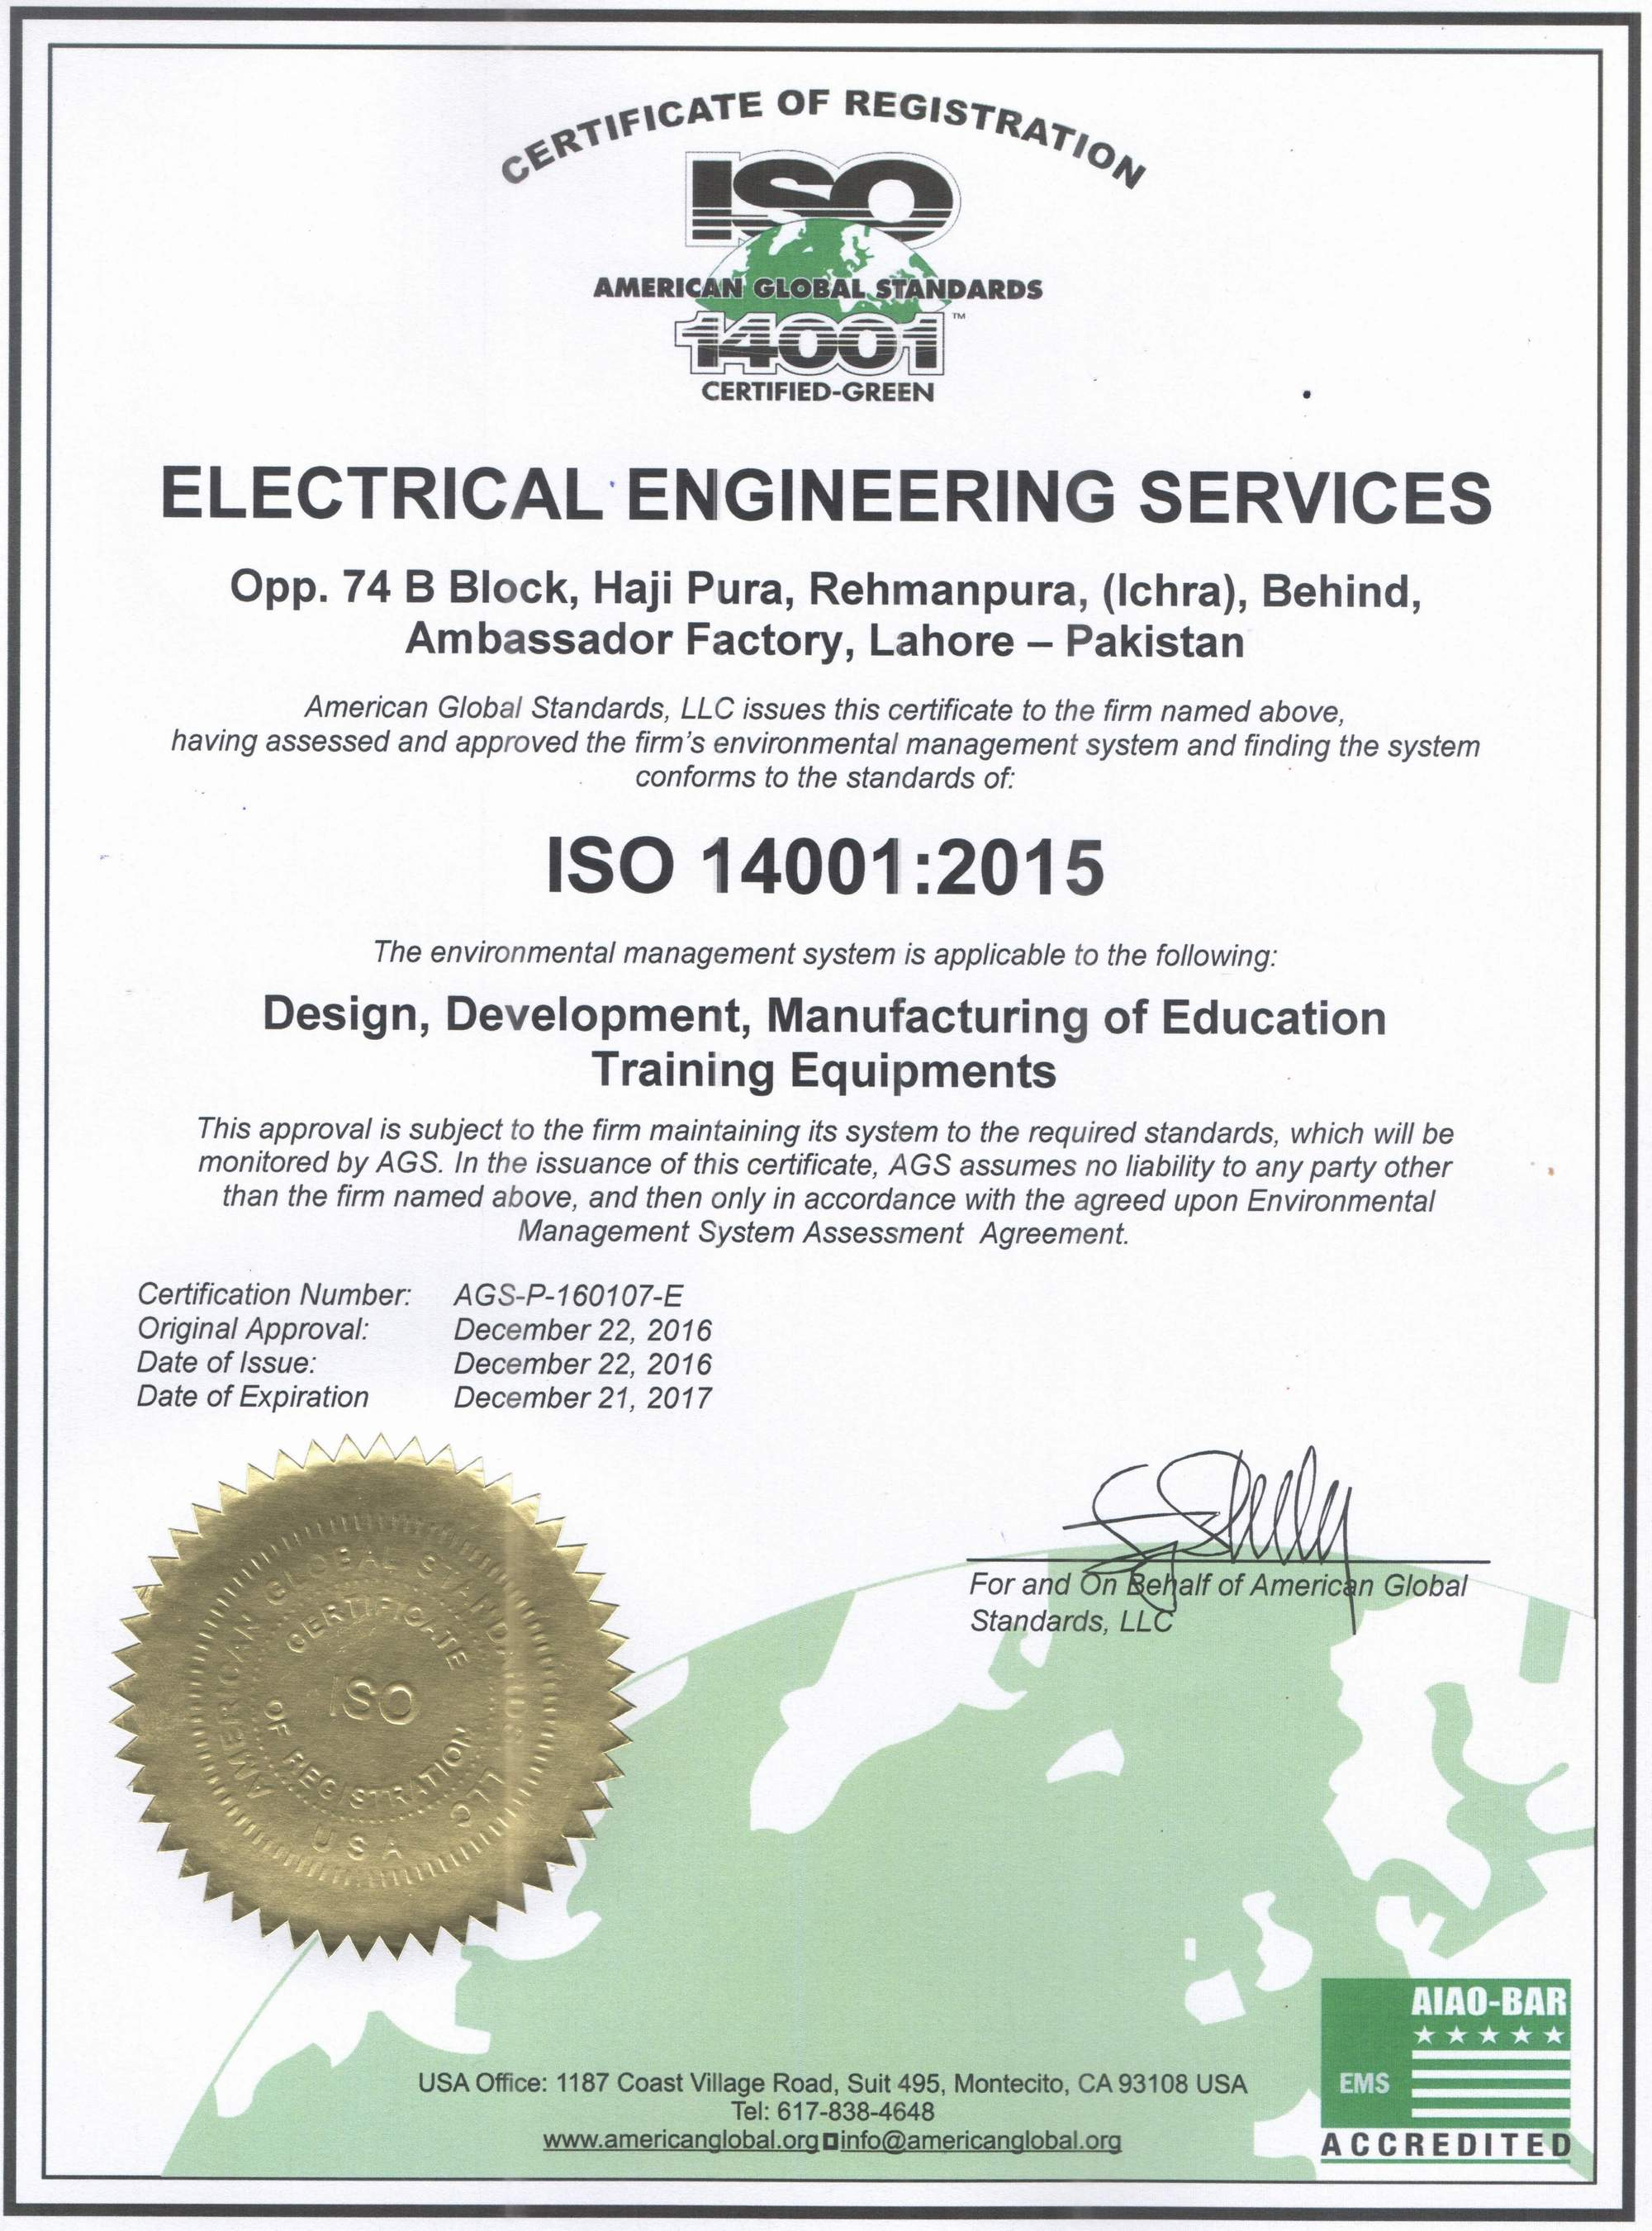 Certifications - Electrical Engineering Services (EES)